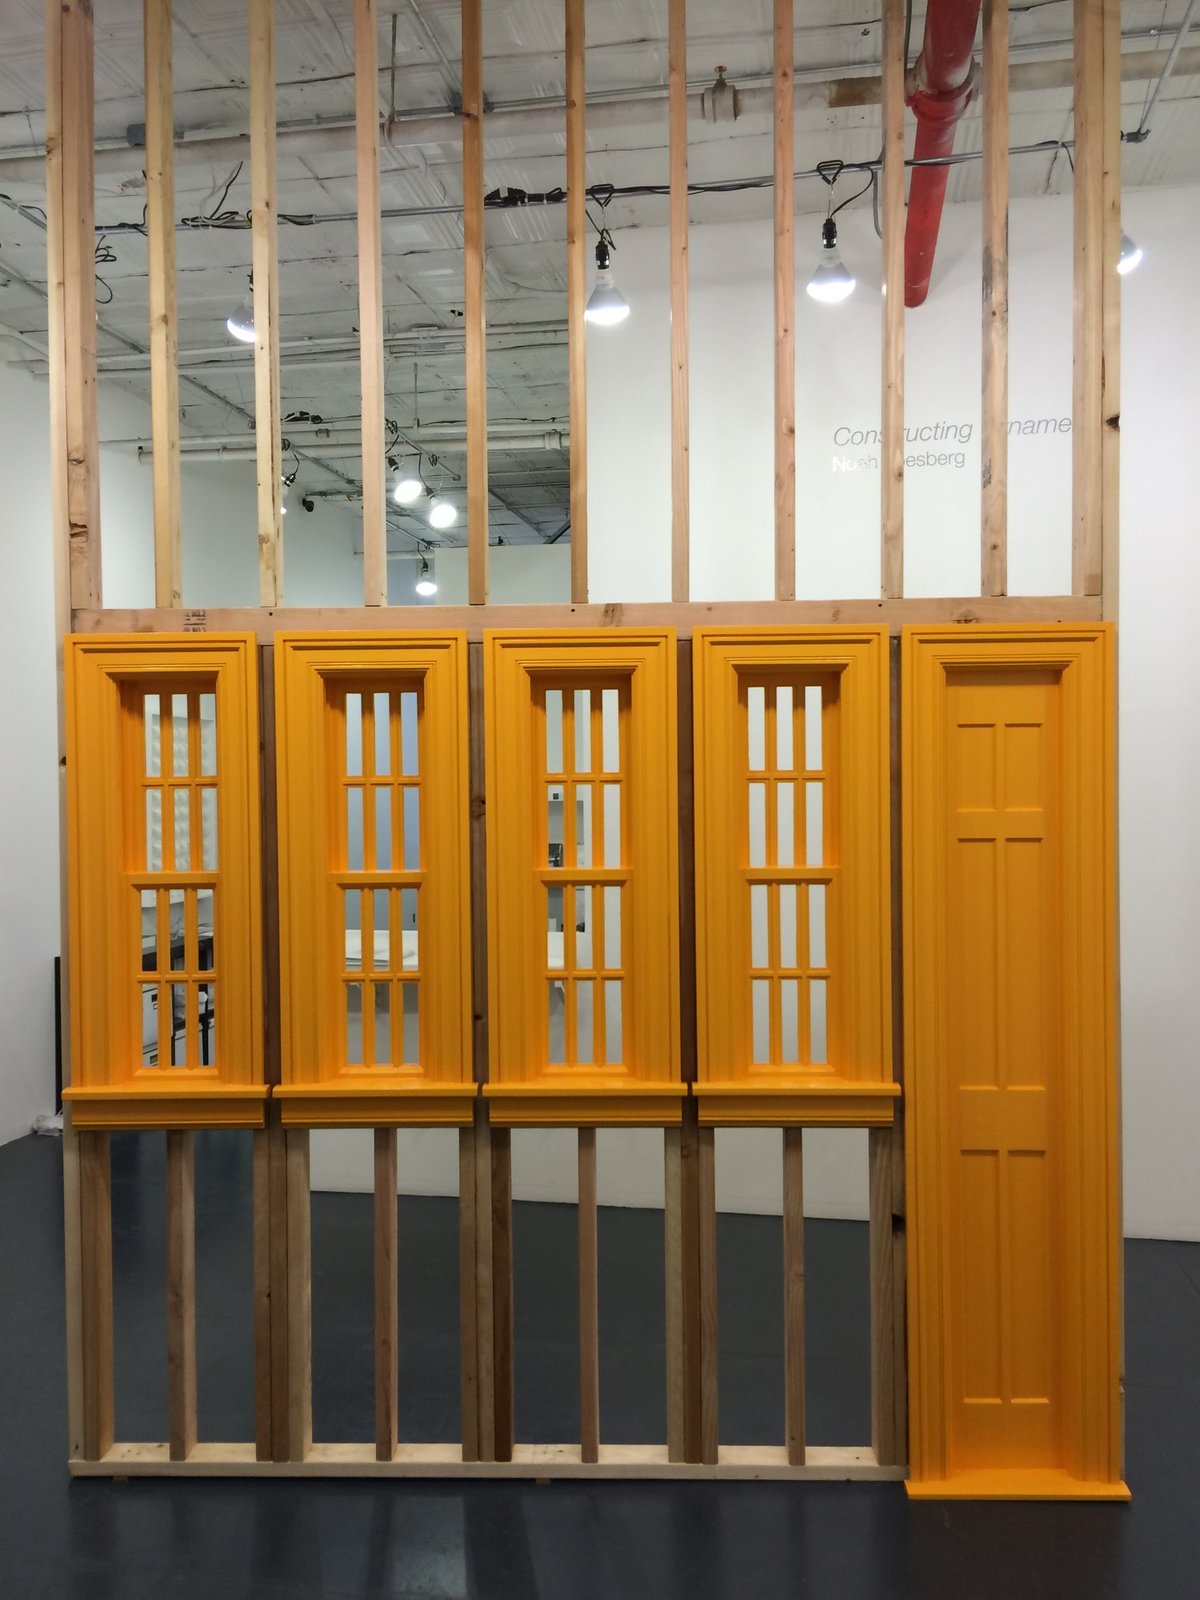 Noah Loesberg, Four Windows, One Door, 2015-16